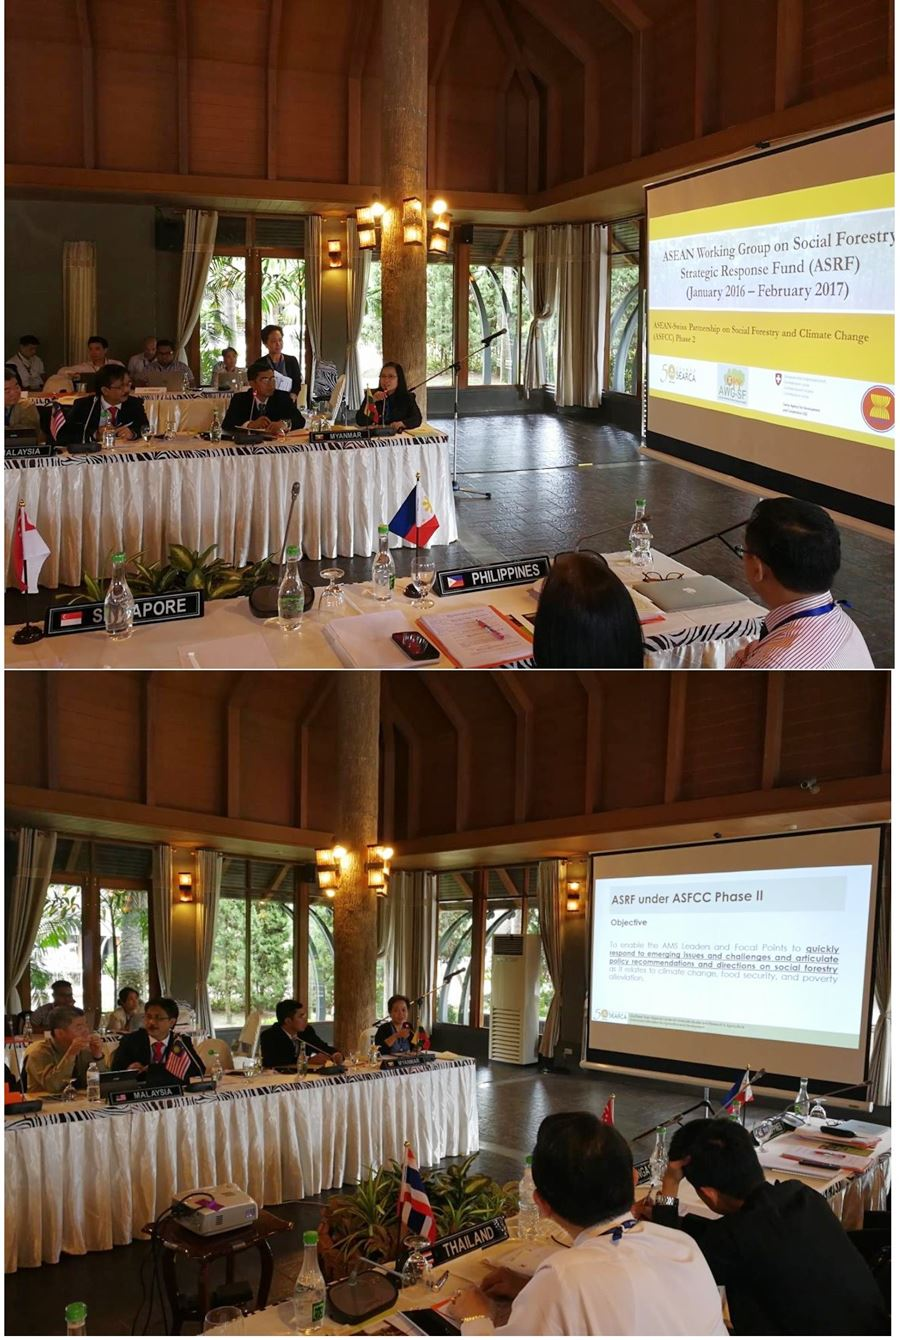 Presentation of SEARCA-ASRF Program  Management Team during the 11th AWG-SF Annual Meeting in Chiang Mai,Thailand.